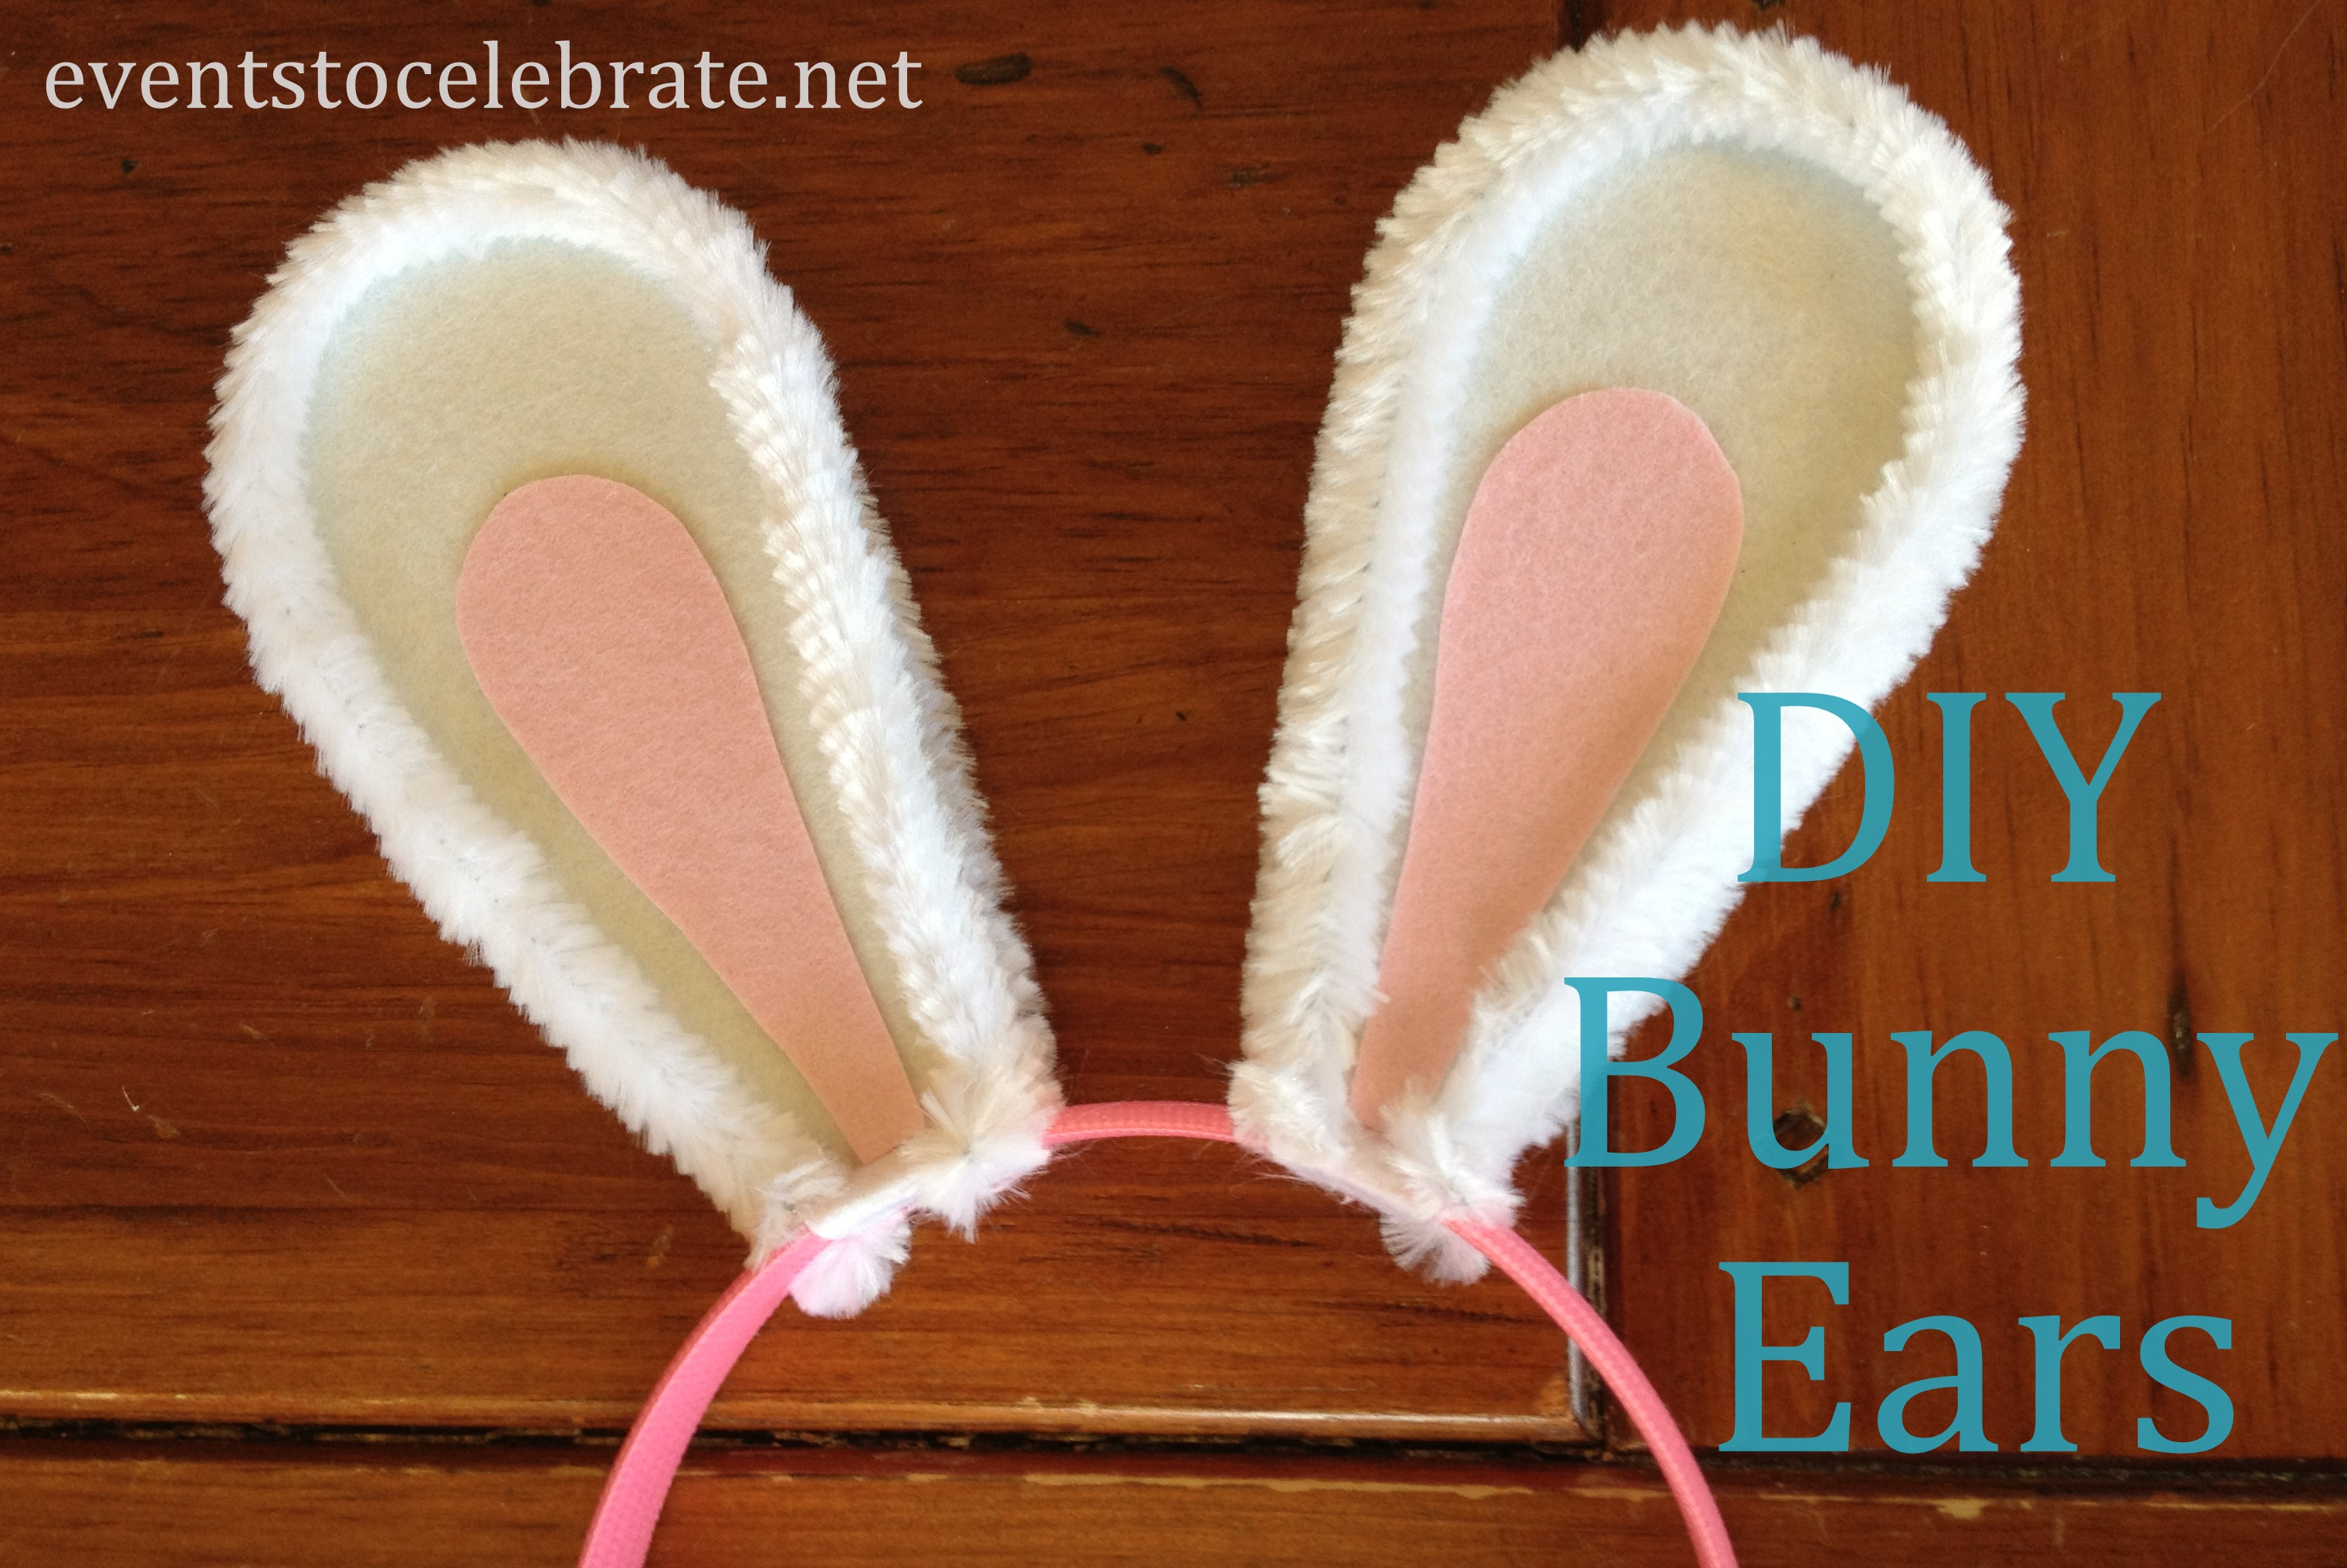 Easy easter bunny crafts - Diy Easter Bunny Ears